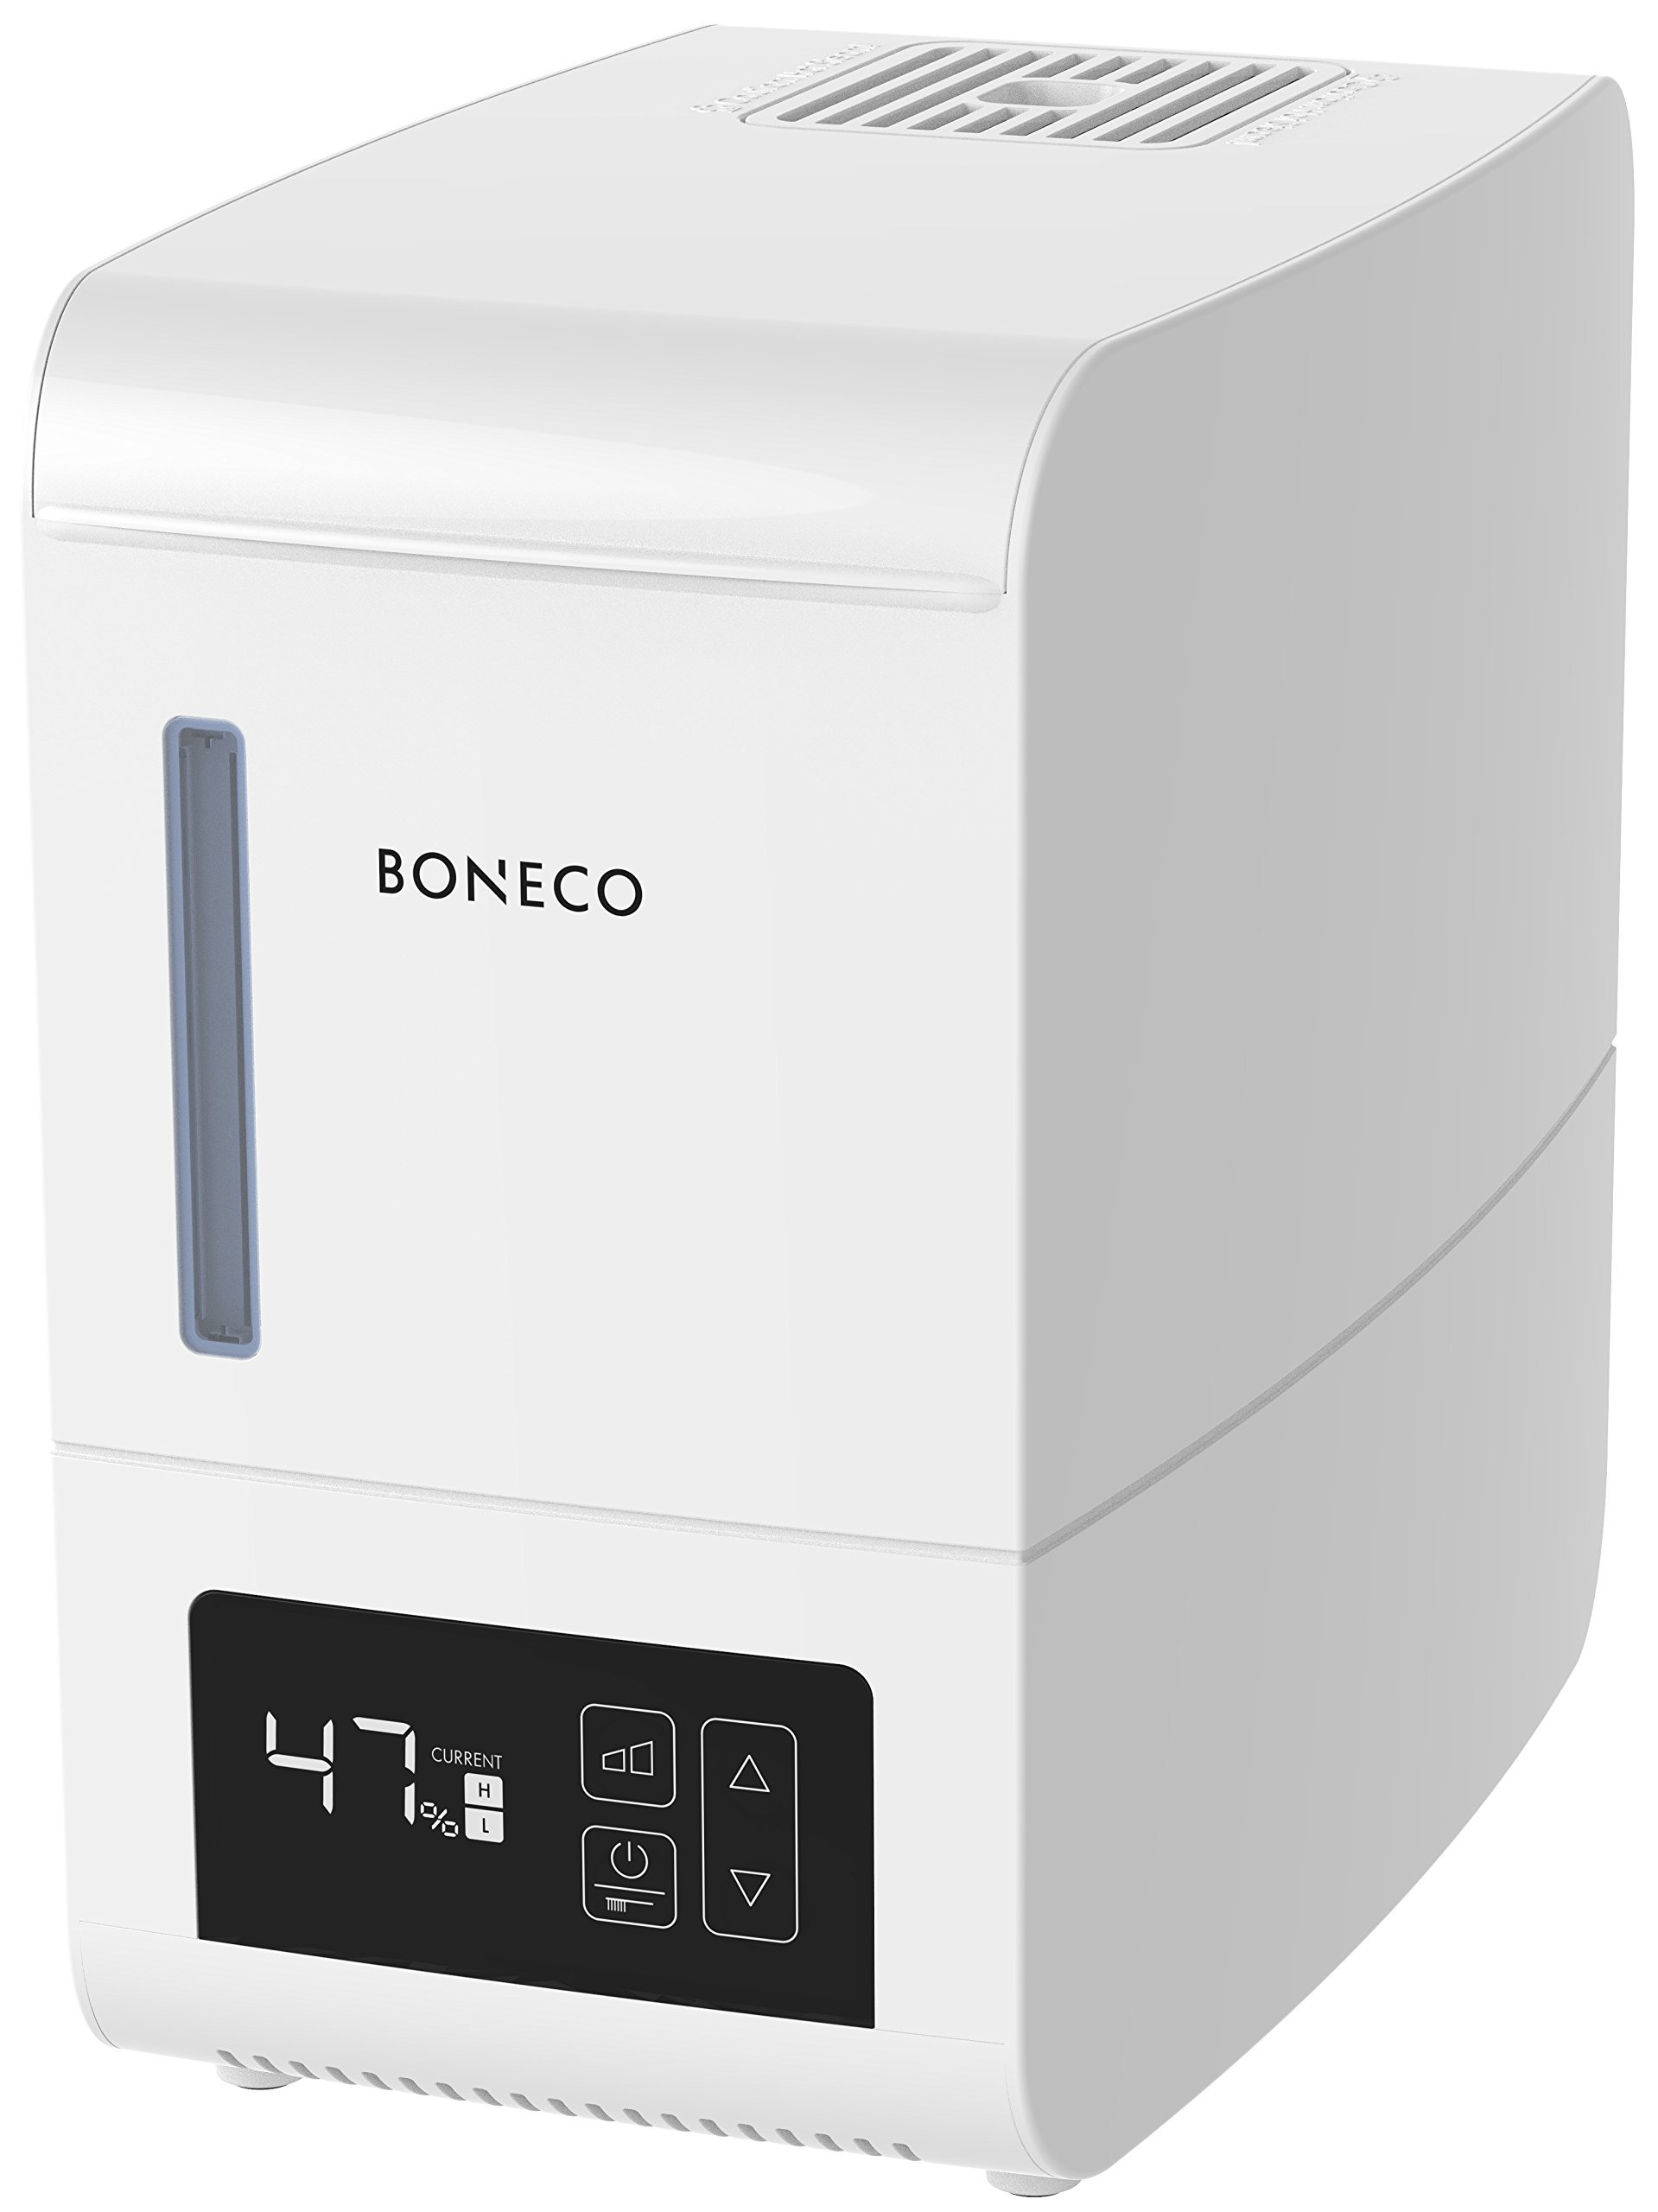 BONECO Digital Steam Humidifier S250 w/ Cleaning Mode